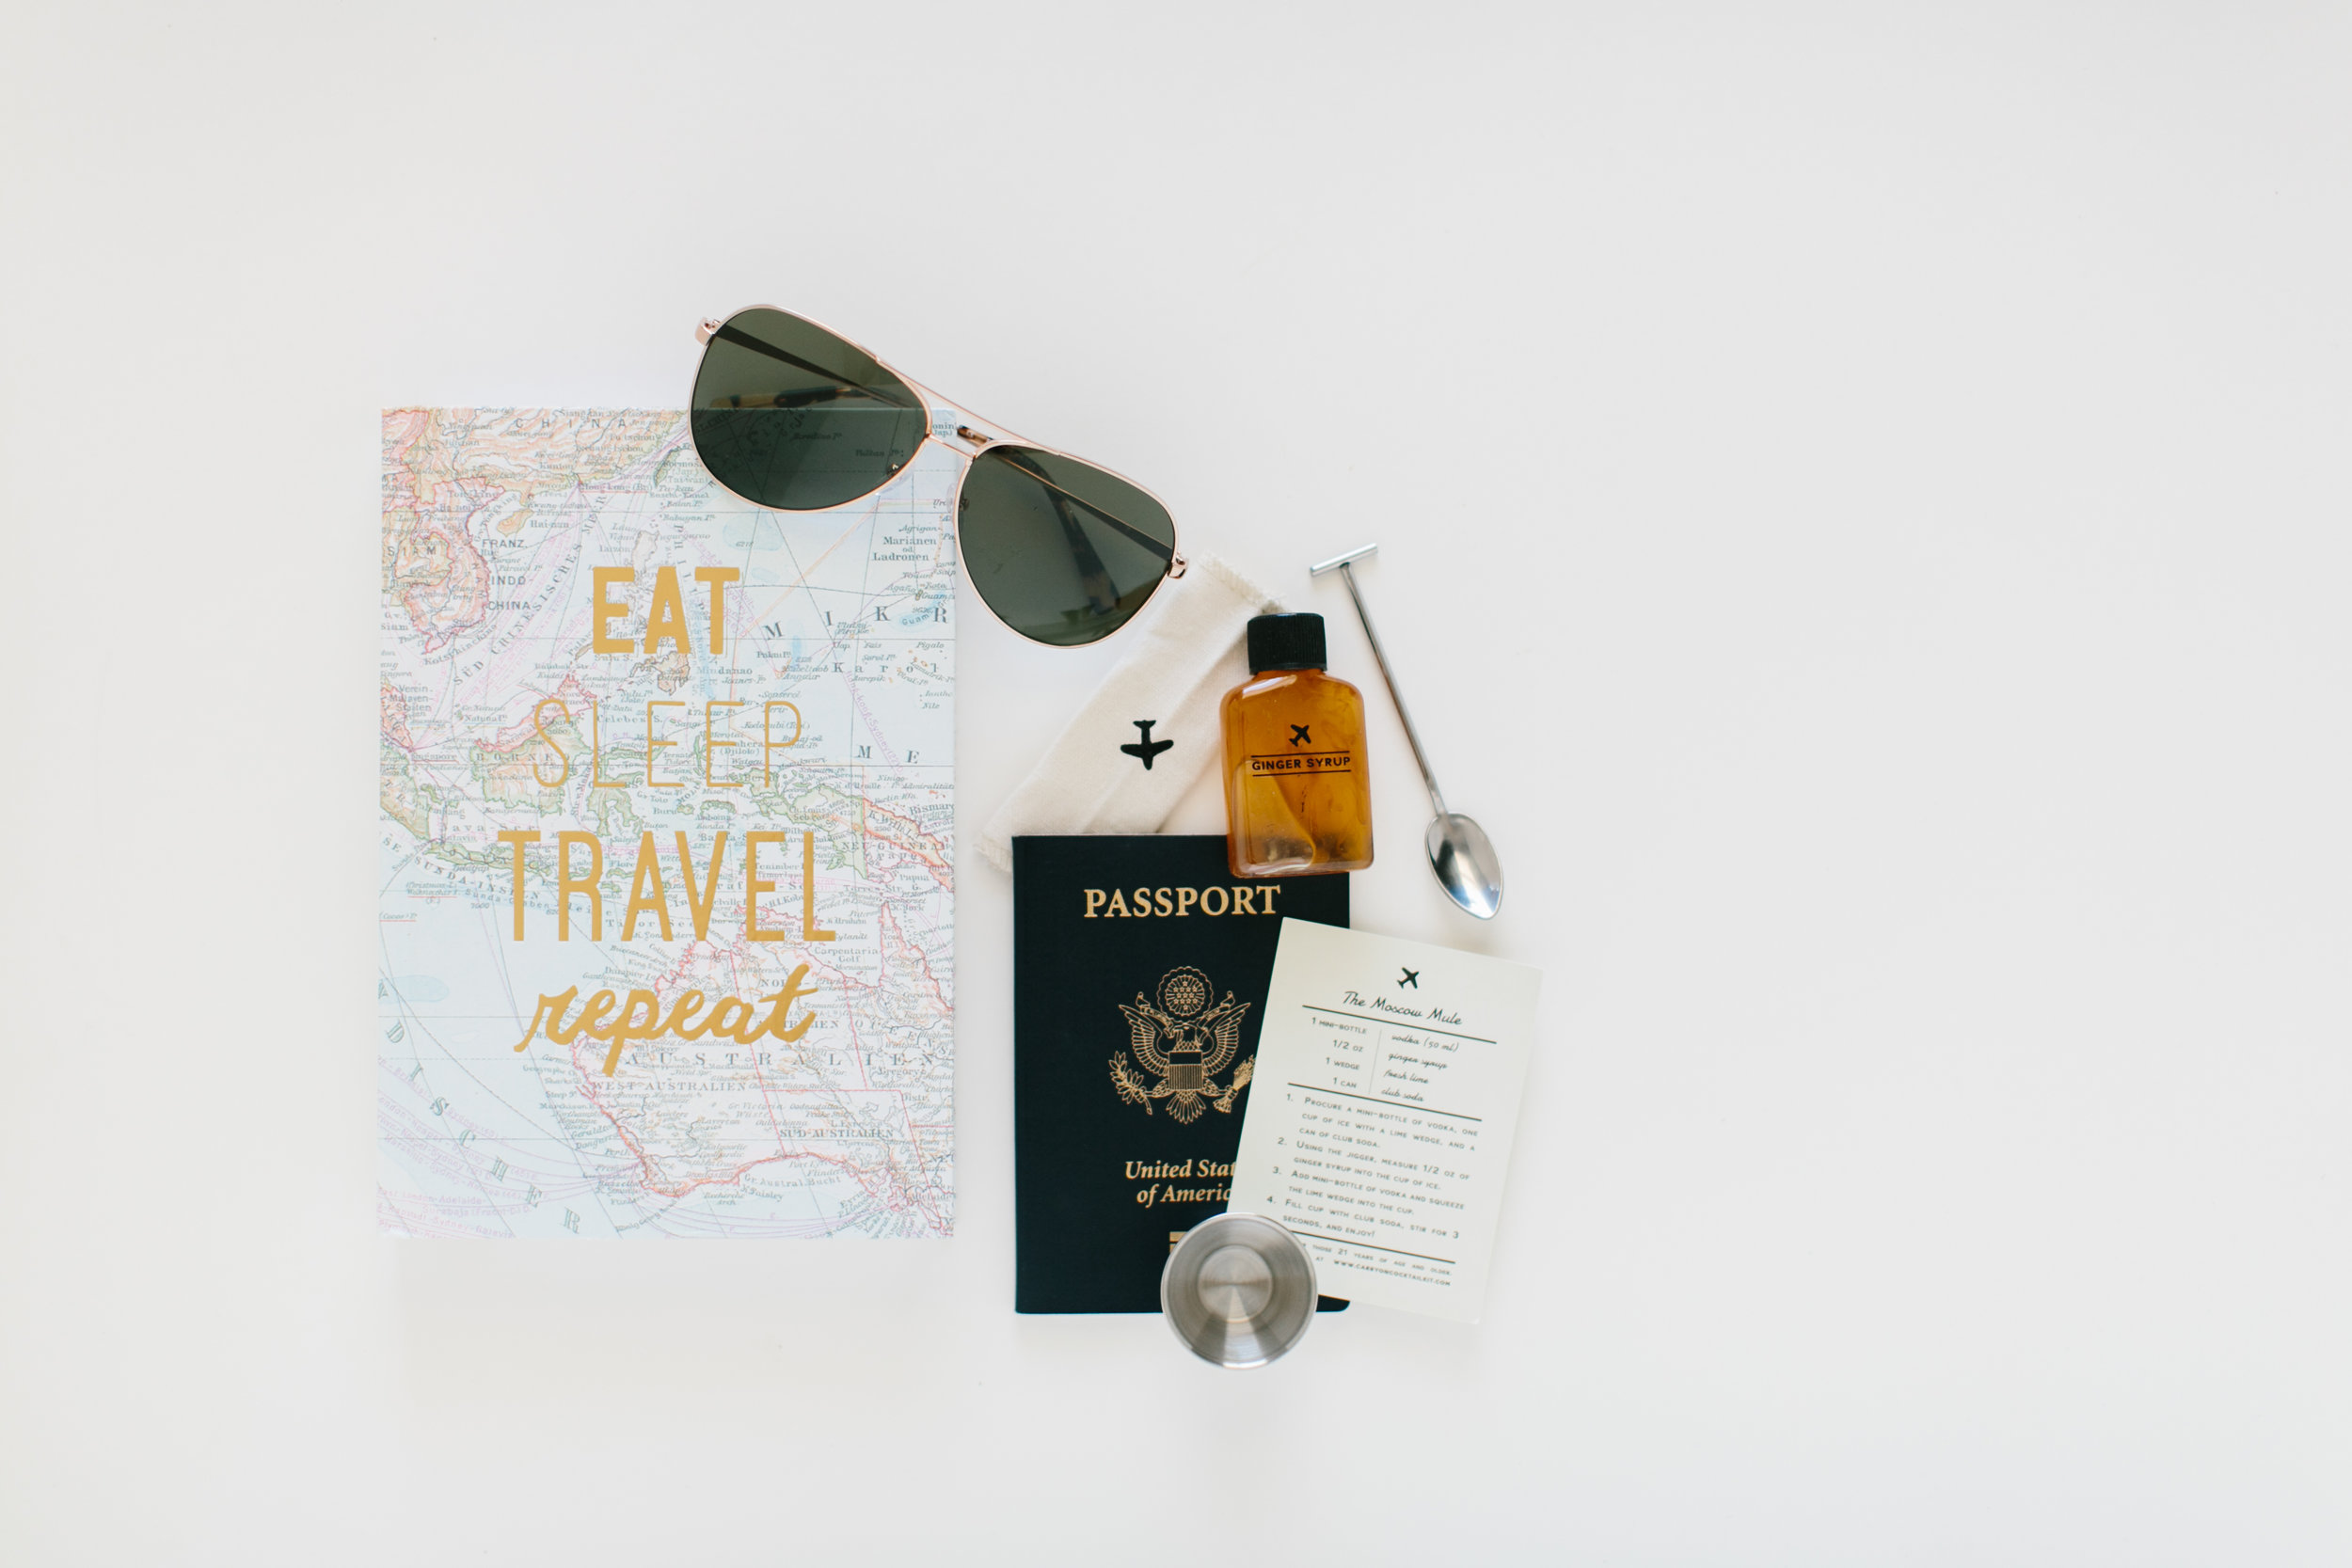 How to prepare for an international flight